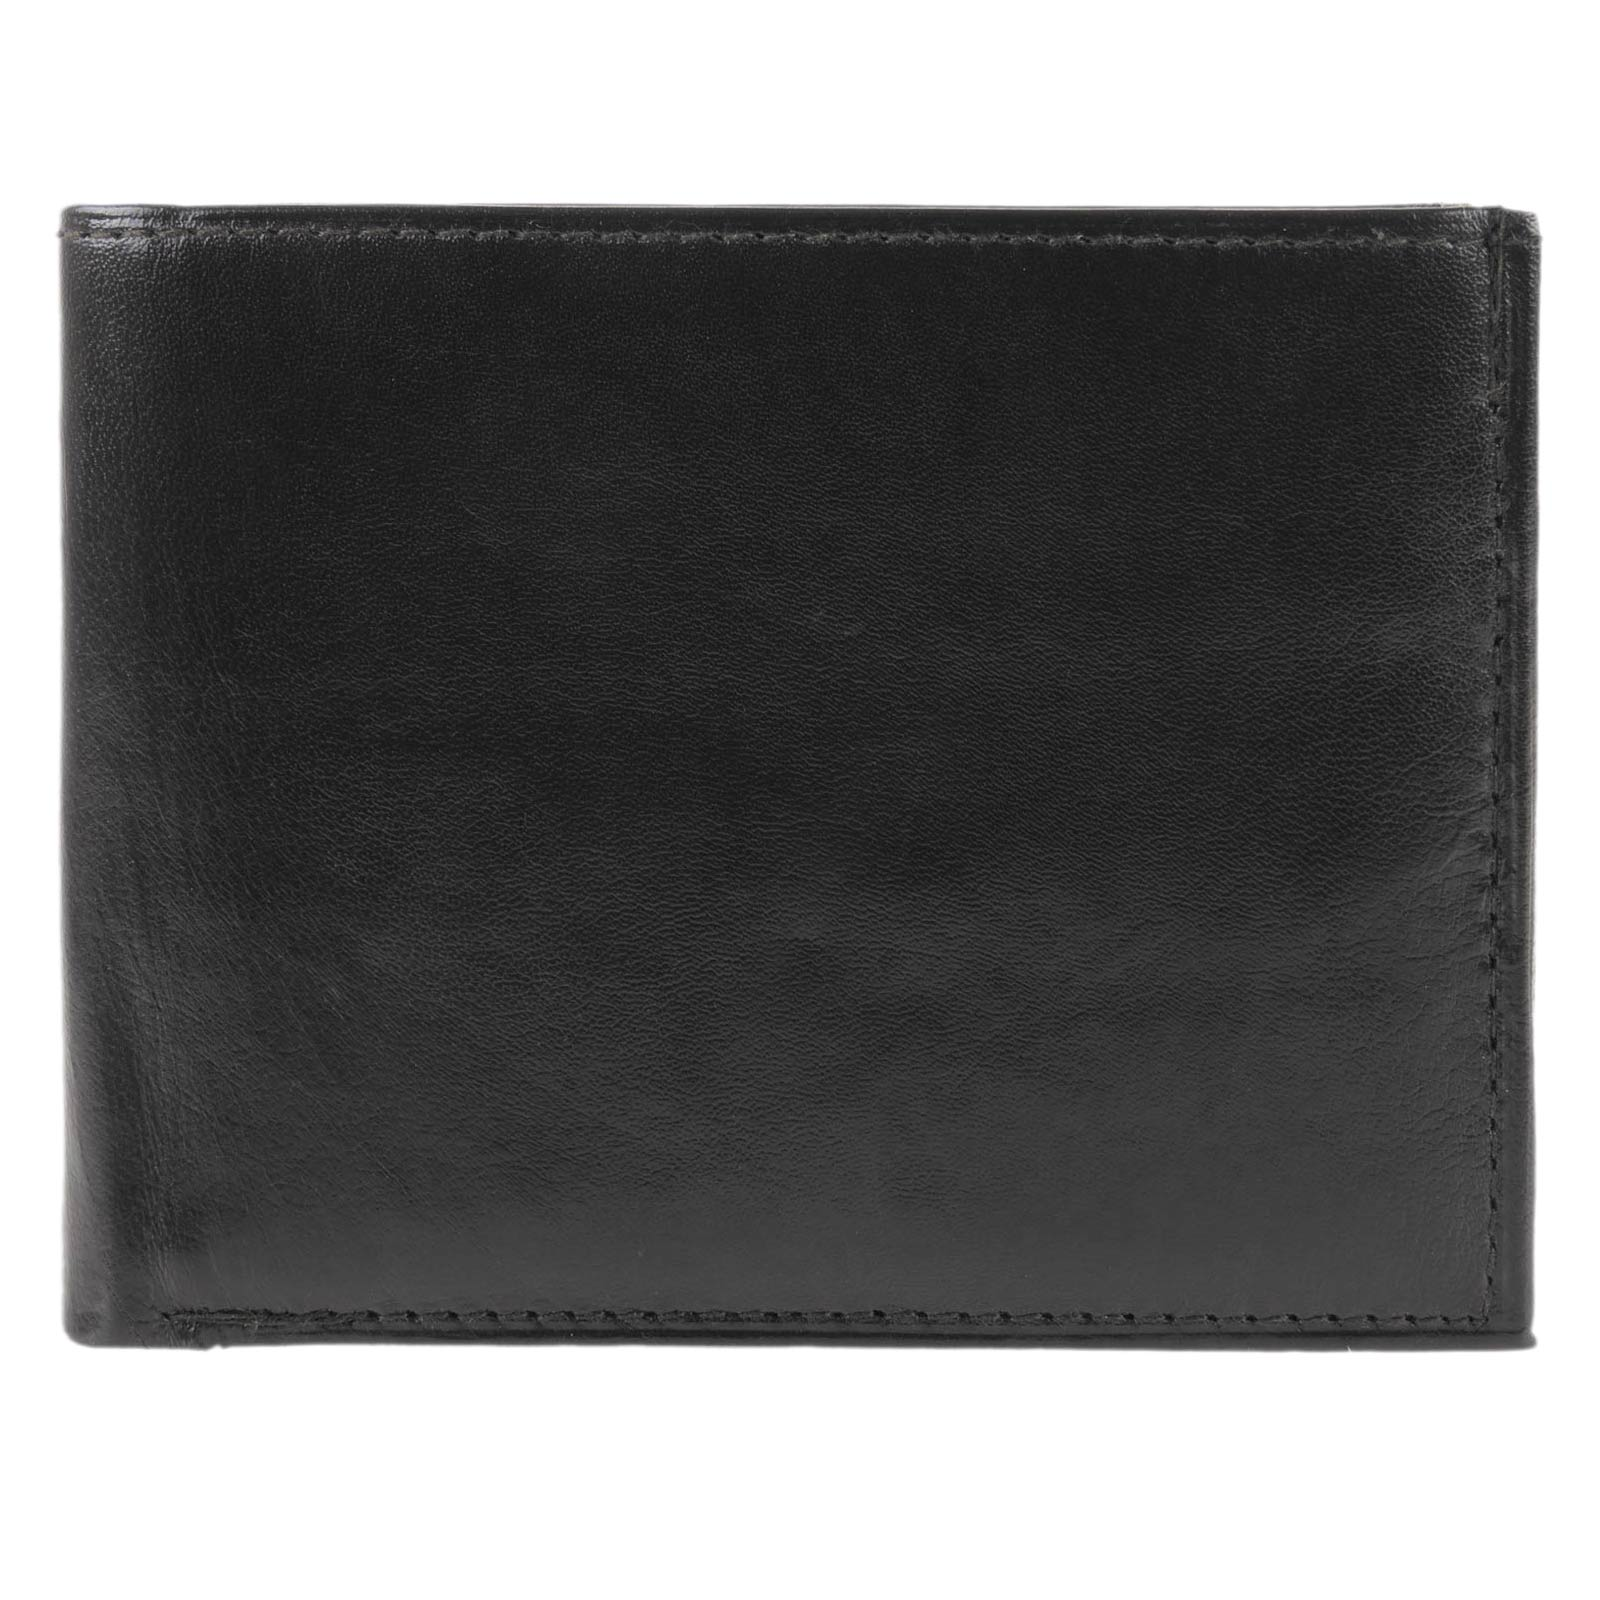 Mens-Quality-Soft-Nappa-LEATHER-Bi-Fold-Wallet-by-Oakridge thumbnail 3